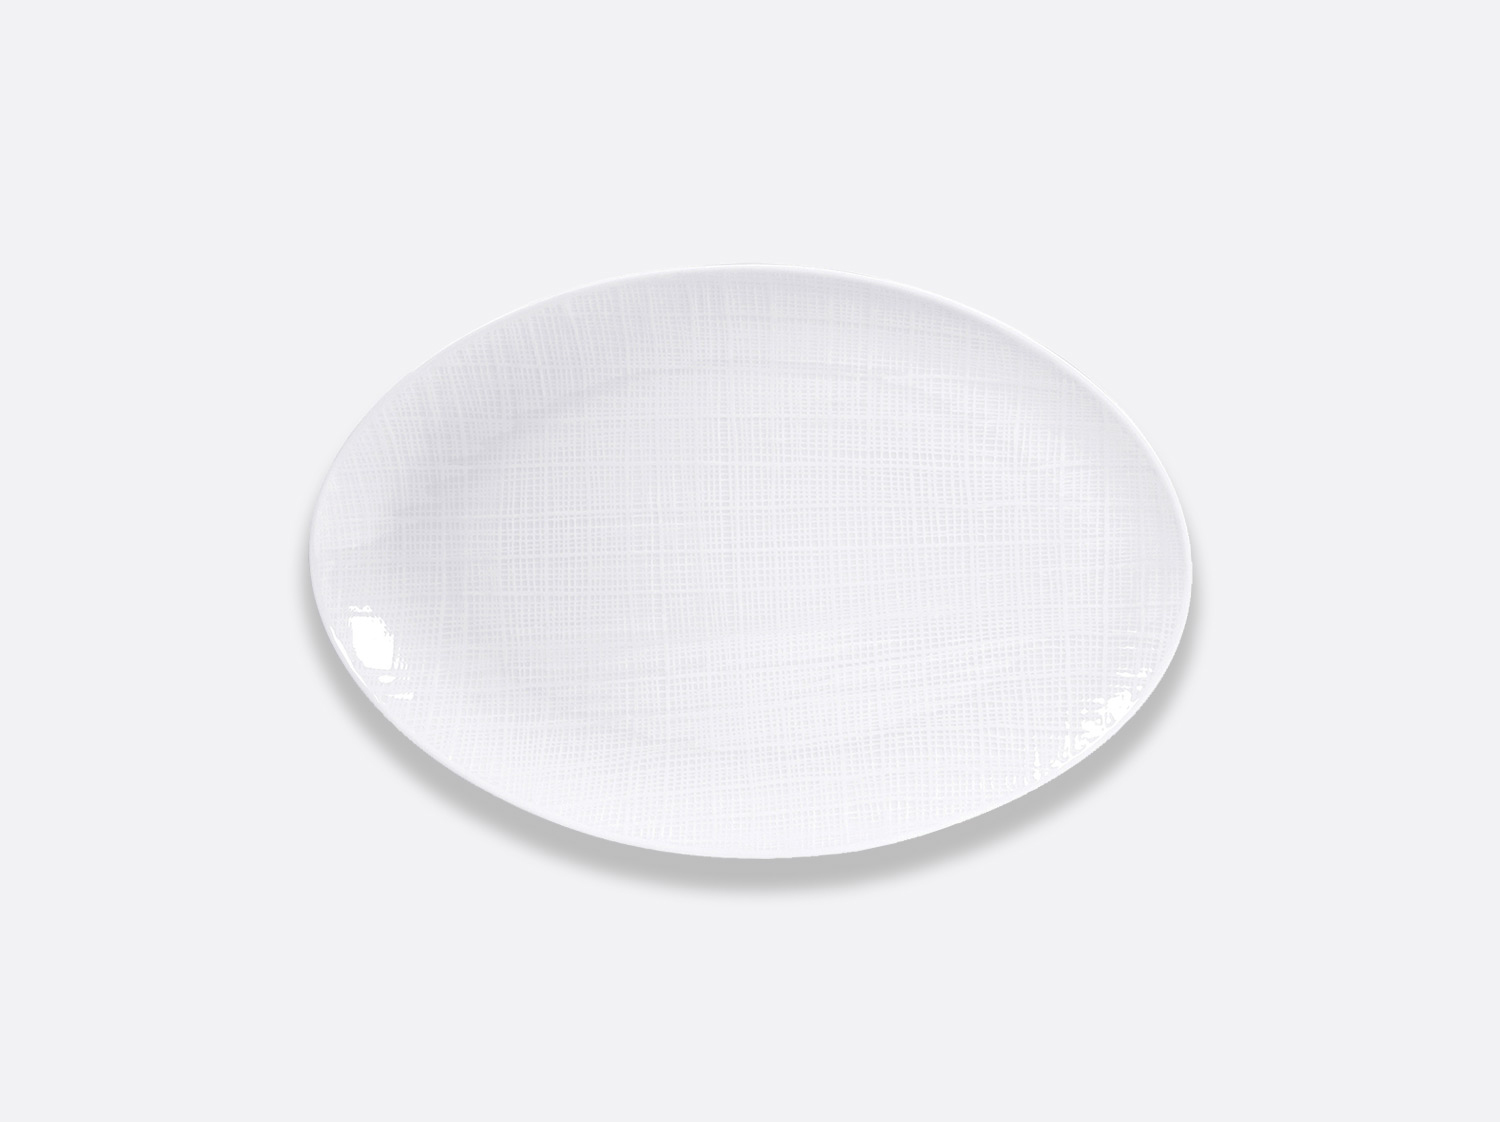 China Oval platter 38 cm of the collection Organza | Bernardaud